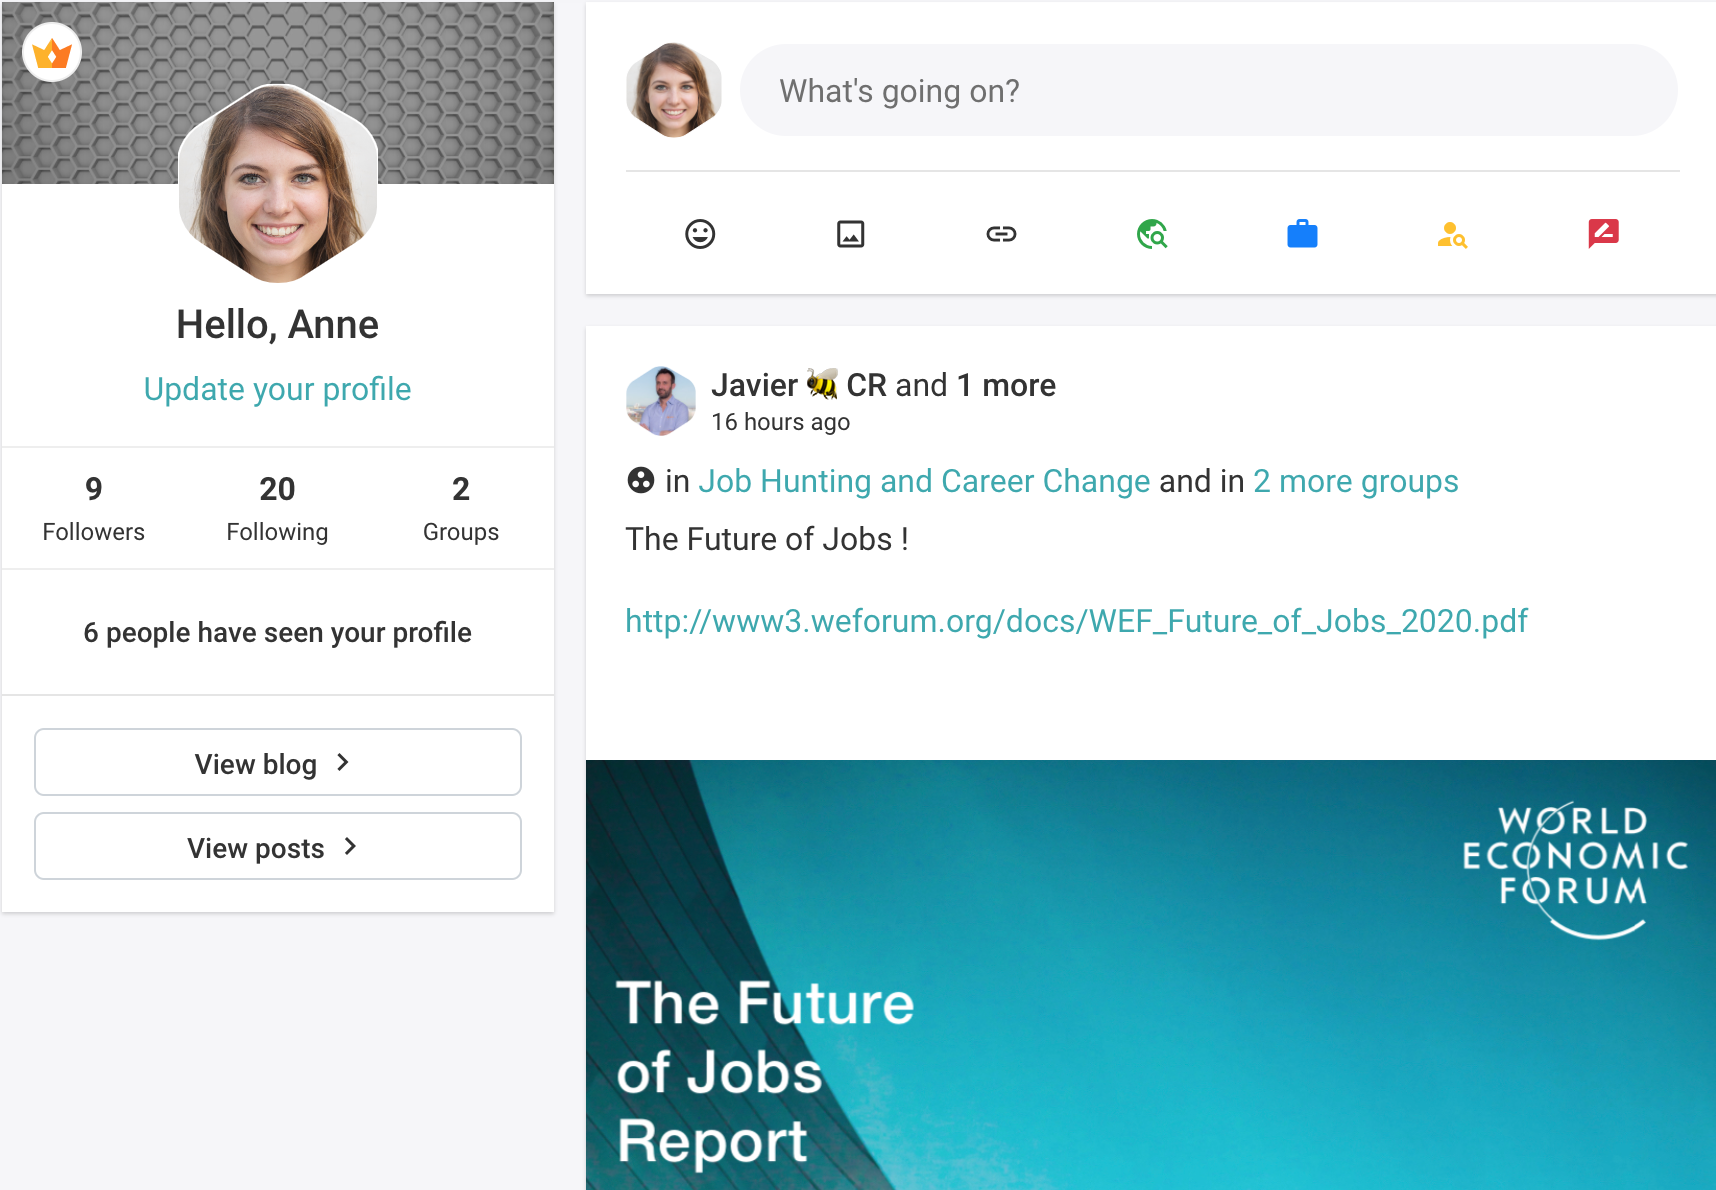 Hello, Anne  Update your profile  9 20 2  Followers Following Groups  6 people have seen your profile  View blog >  View posts >     0 What's going on?  © & @ & a 3  Javier #1 CR and 1 more  16 hours ago @® in Job Hunting and Career Change and in 2 more groups  The Future of Jobs !  http://www3.weforum.org/docs/WEF_Future_of_Jobs_2020.pdf  WORLD ECONOMIC (HYUN  Nd  The Future of Jobs Report